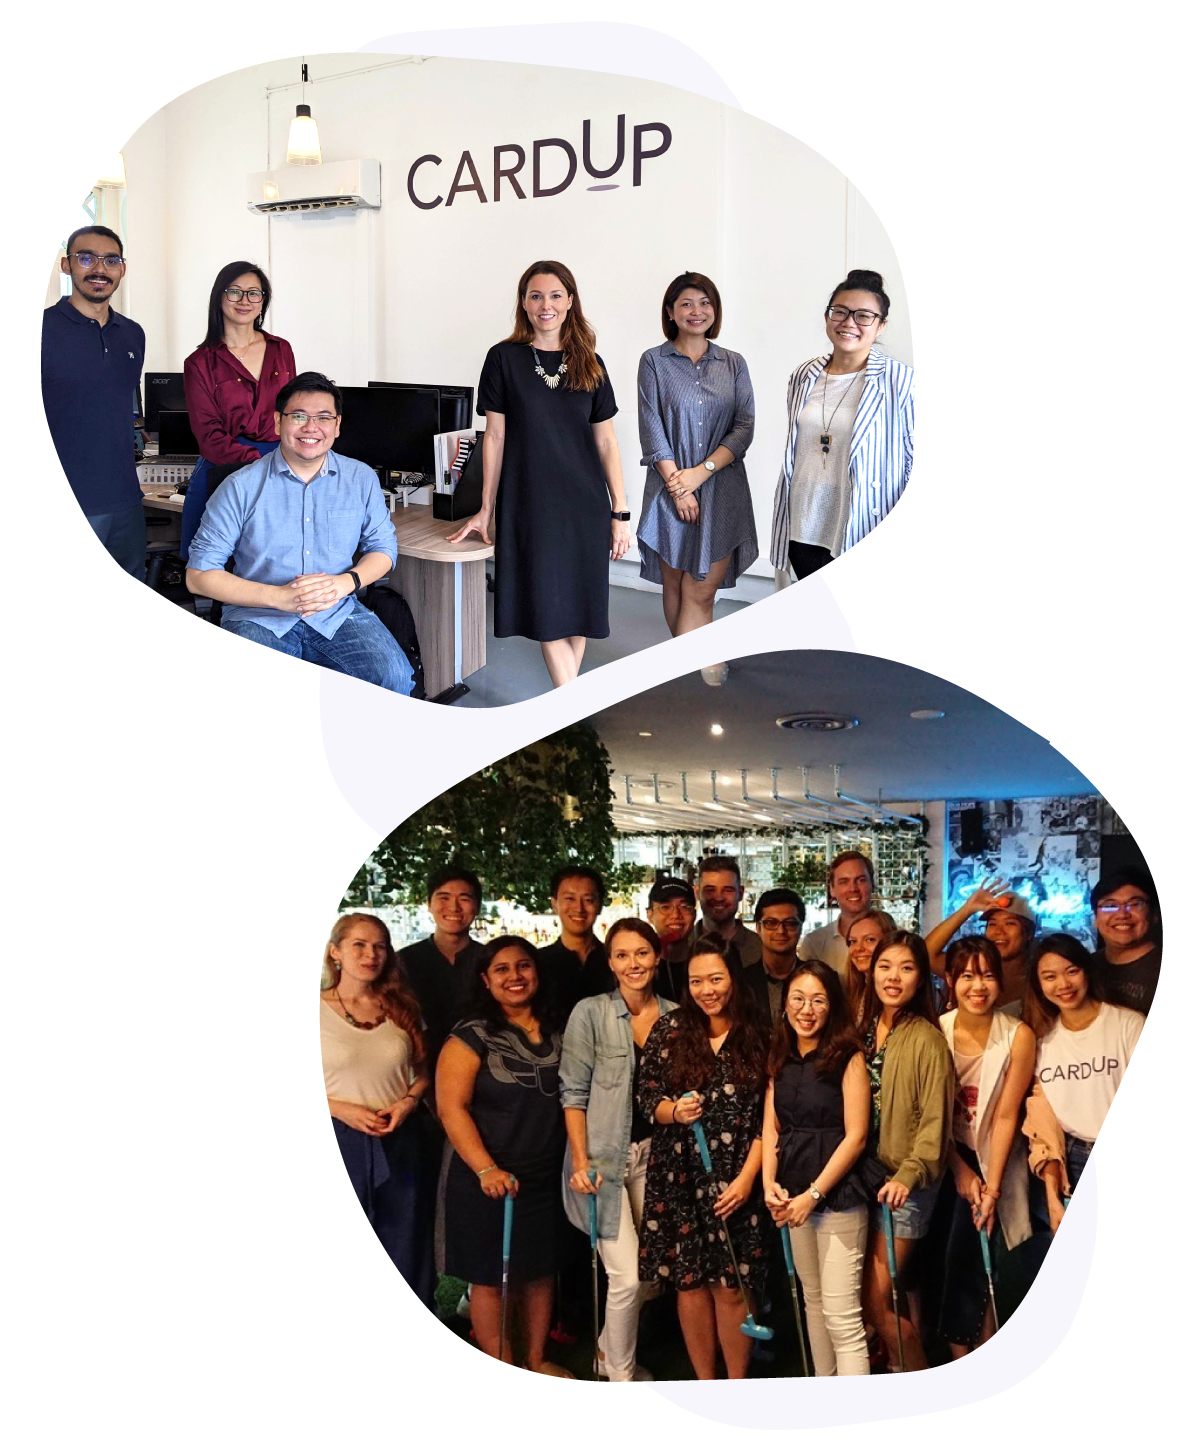 Image of CardUp team in the office and during team bonding day